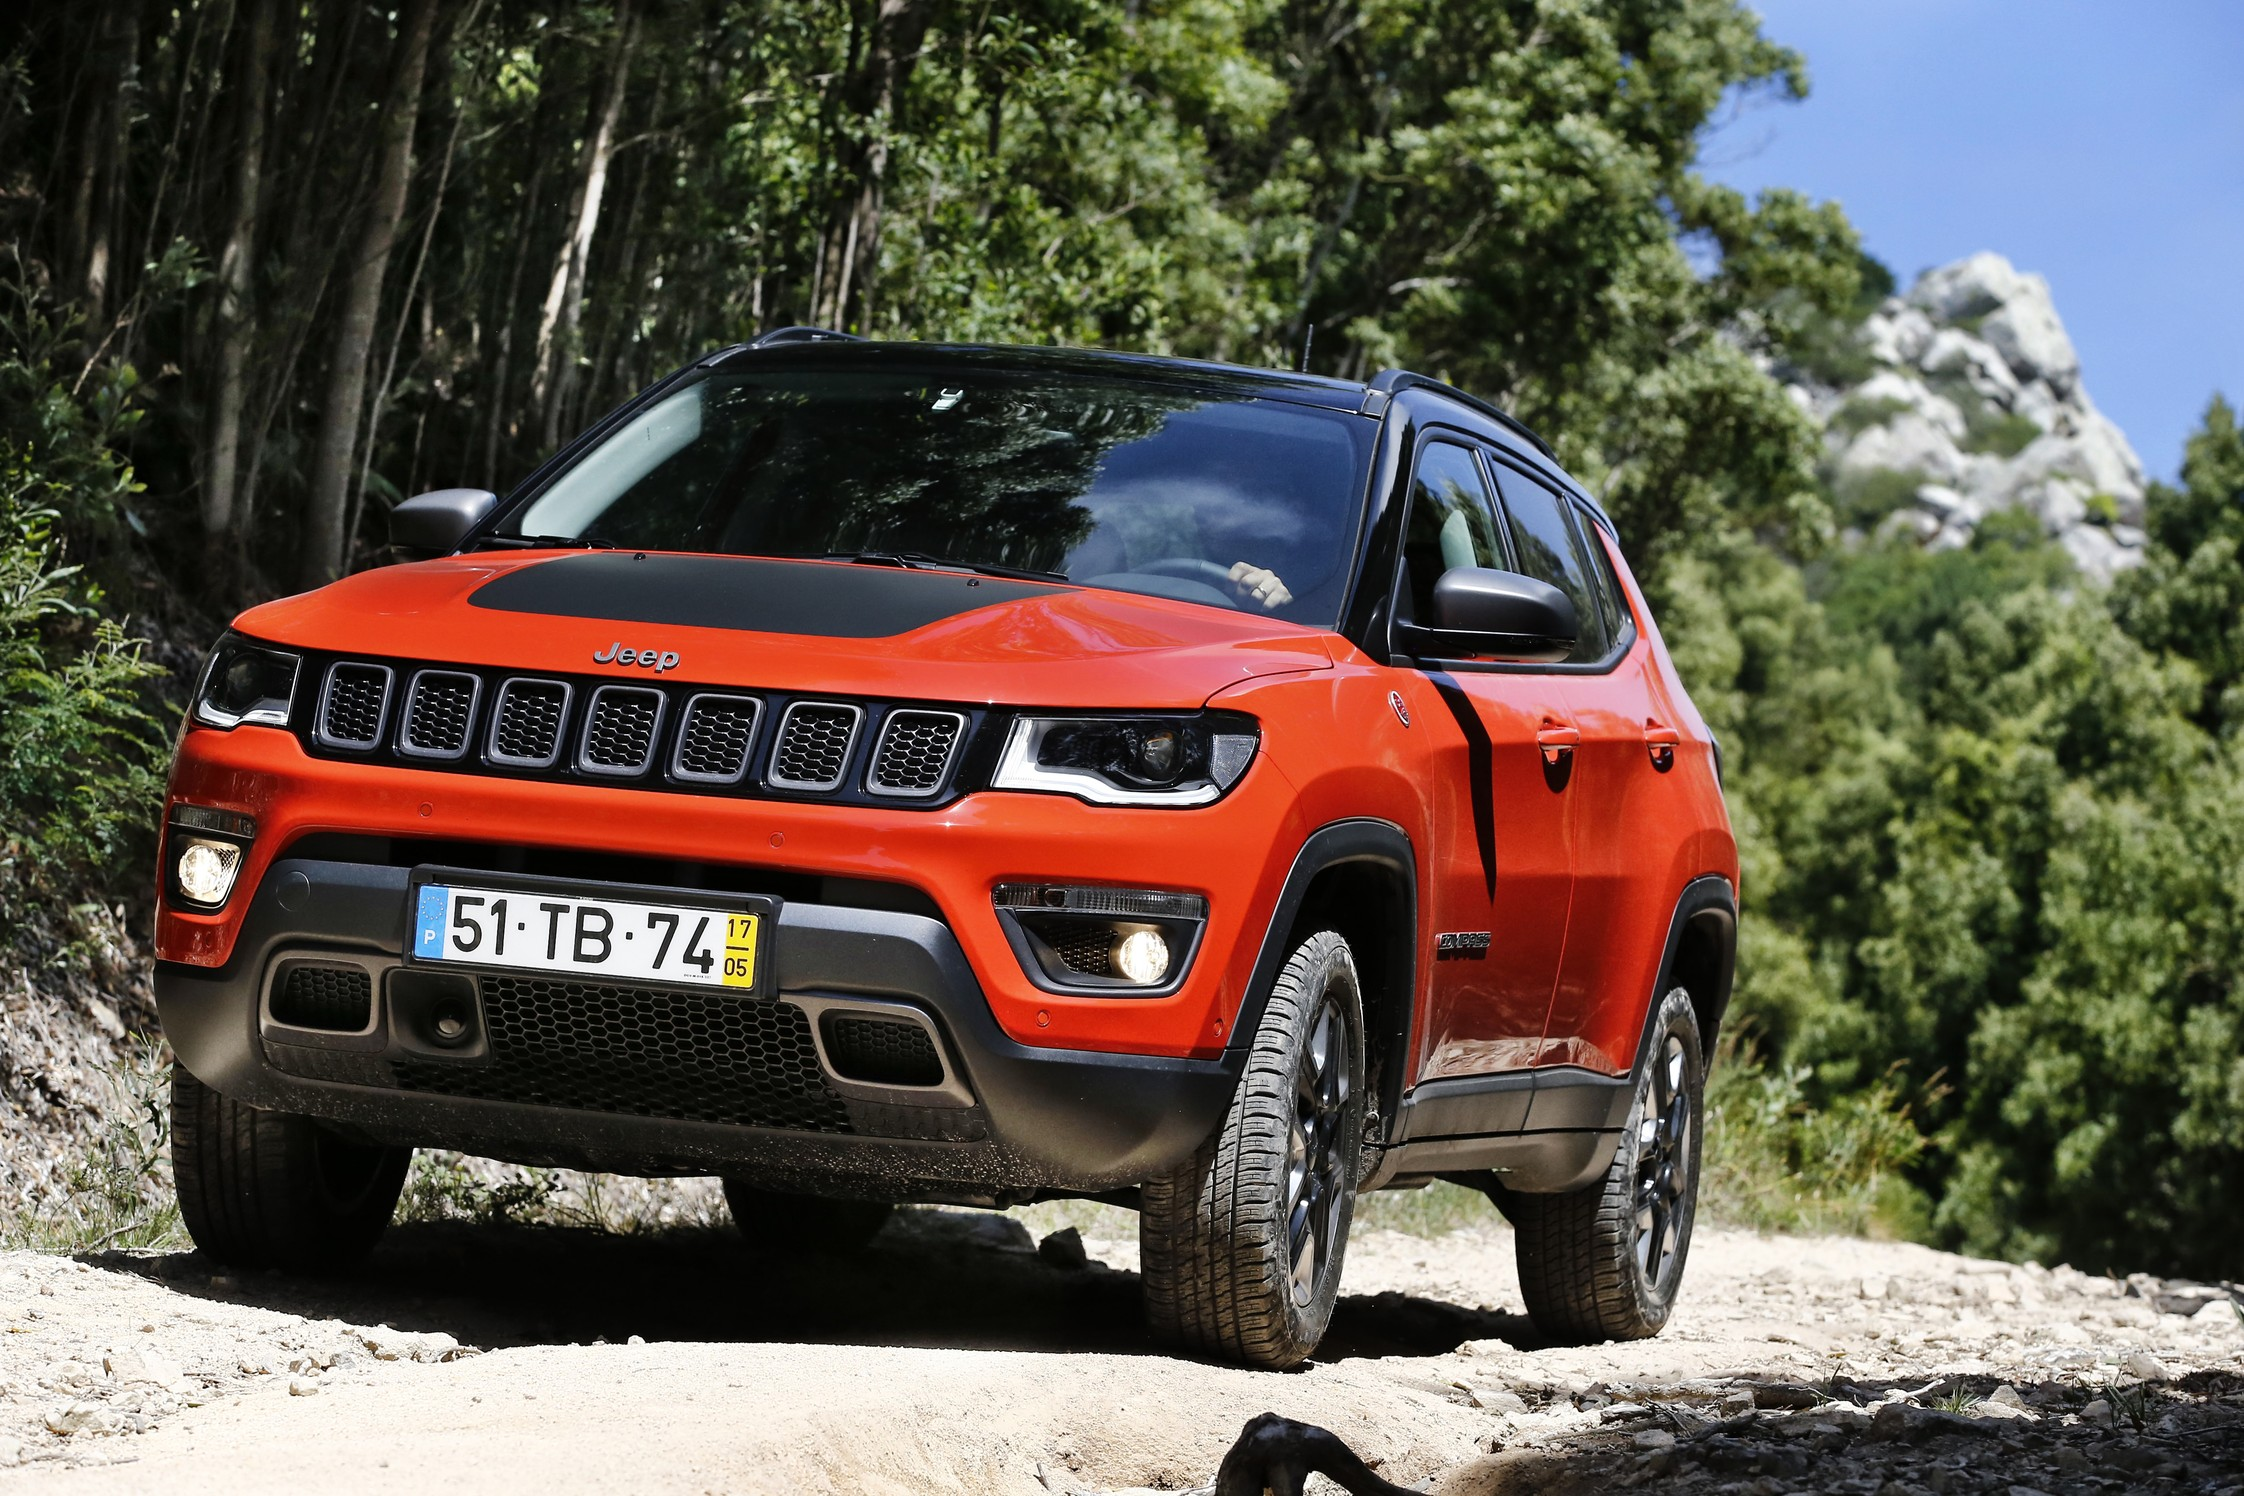 essai jeep compass 2 0 multijet 170 4x4 bva9 trailhawk motorlegend. Black Bedroom Furniture Sets. Home Design Ideas